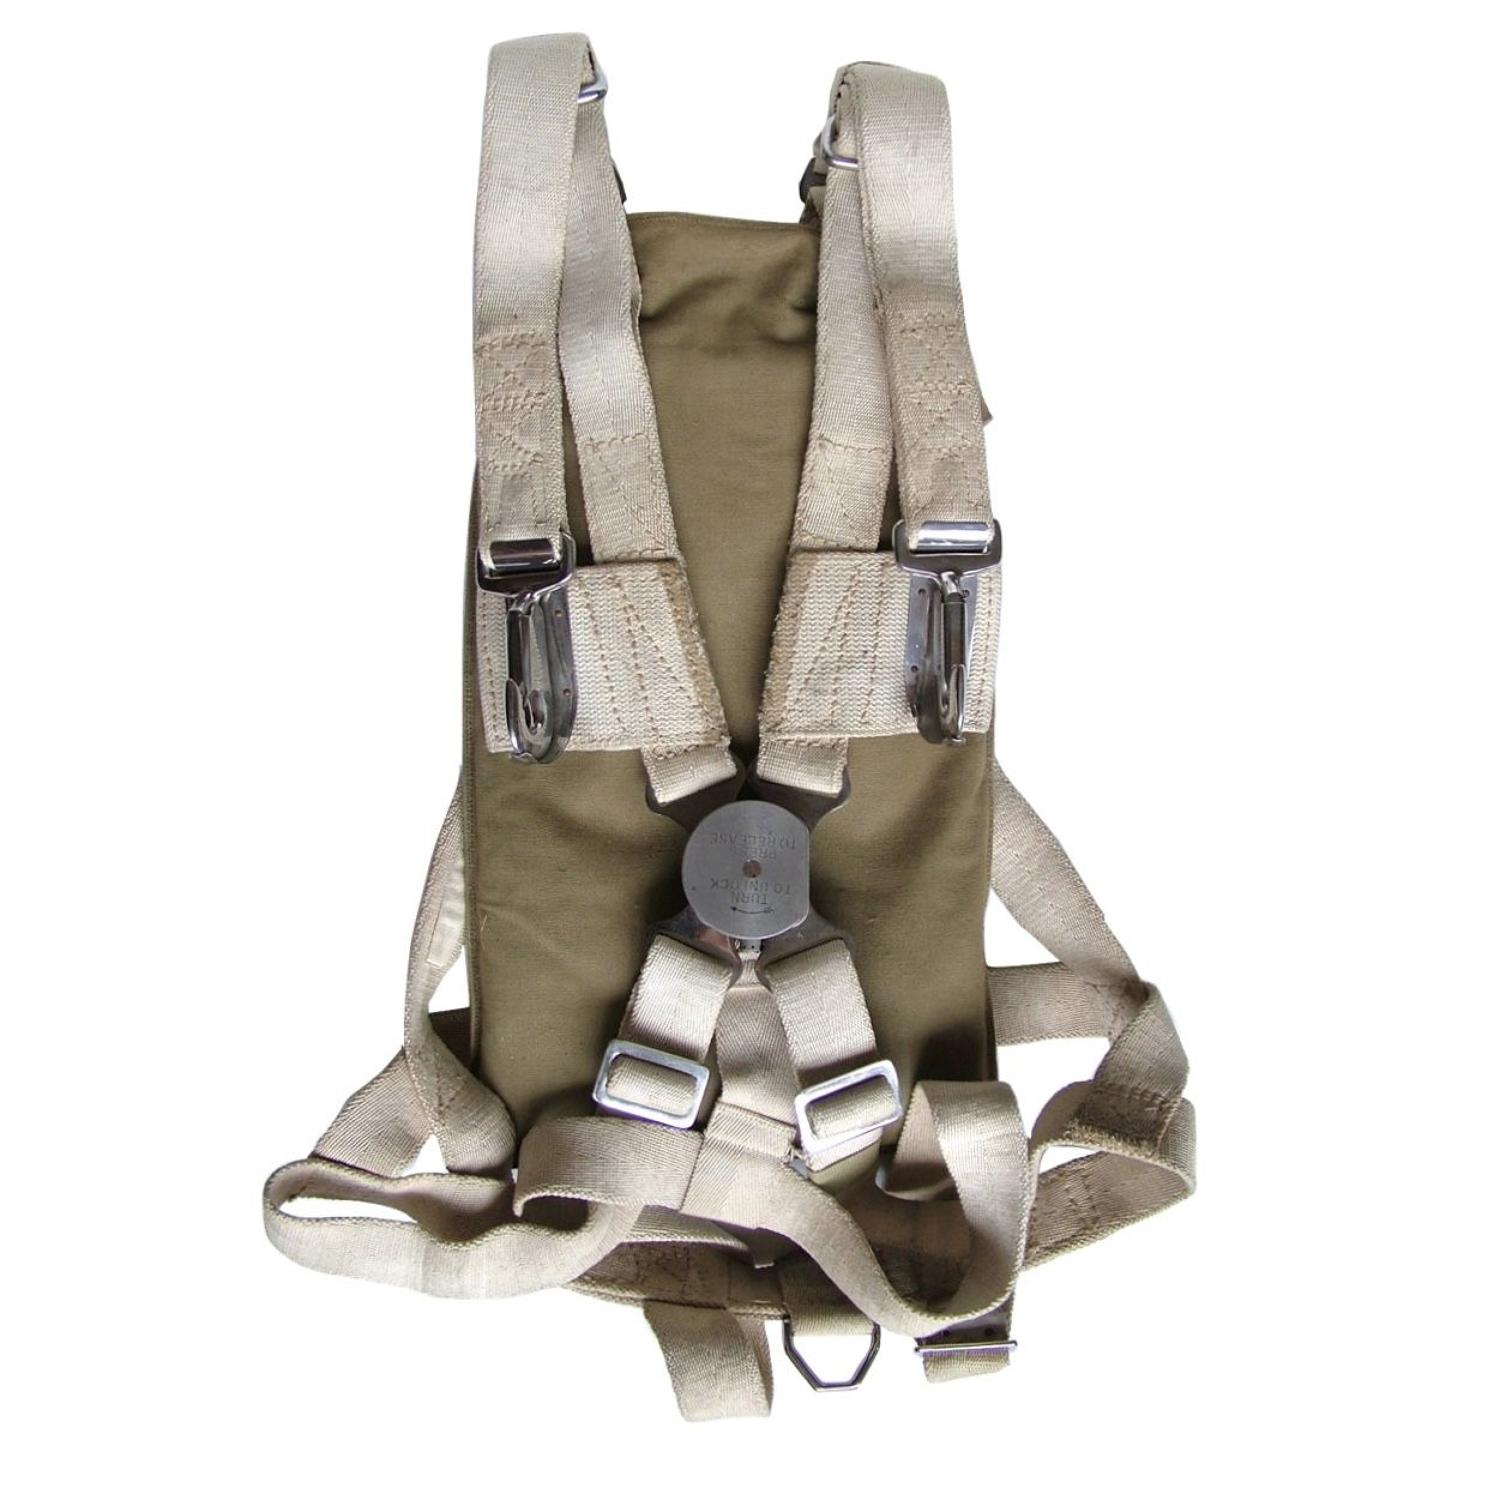 RCAF Observer parachute harness